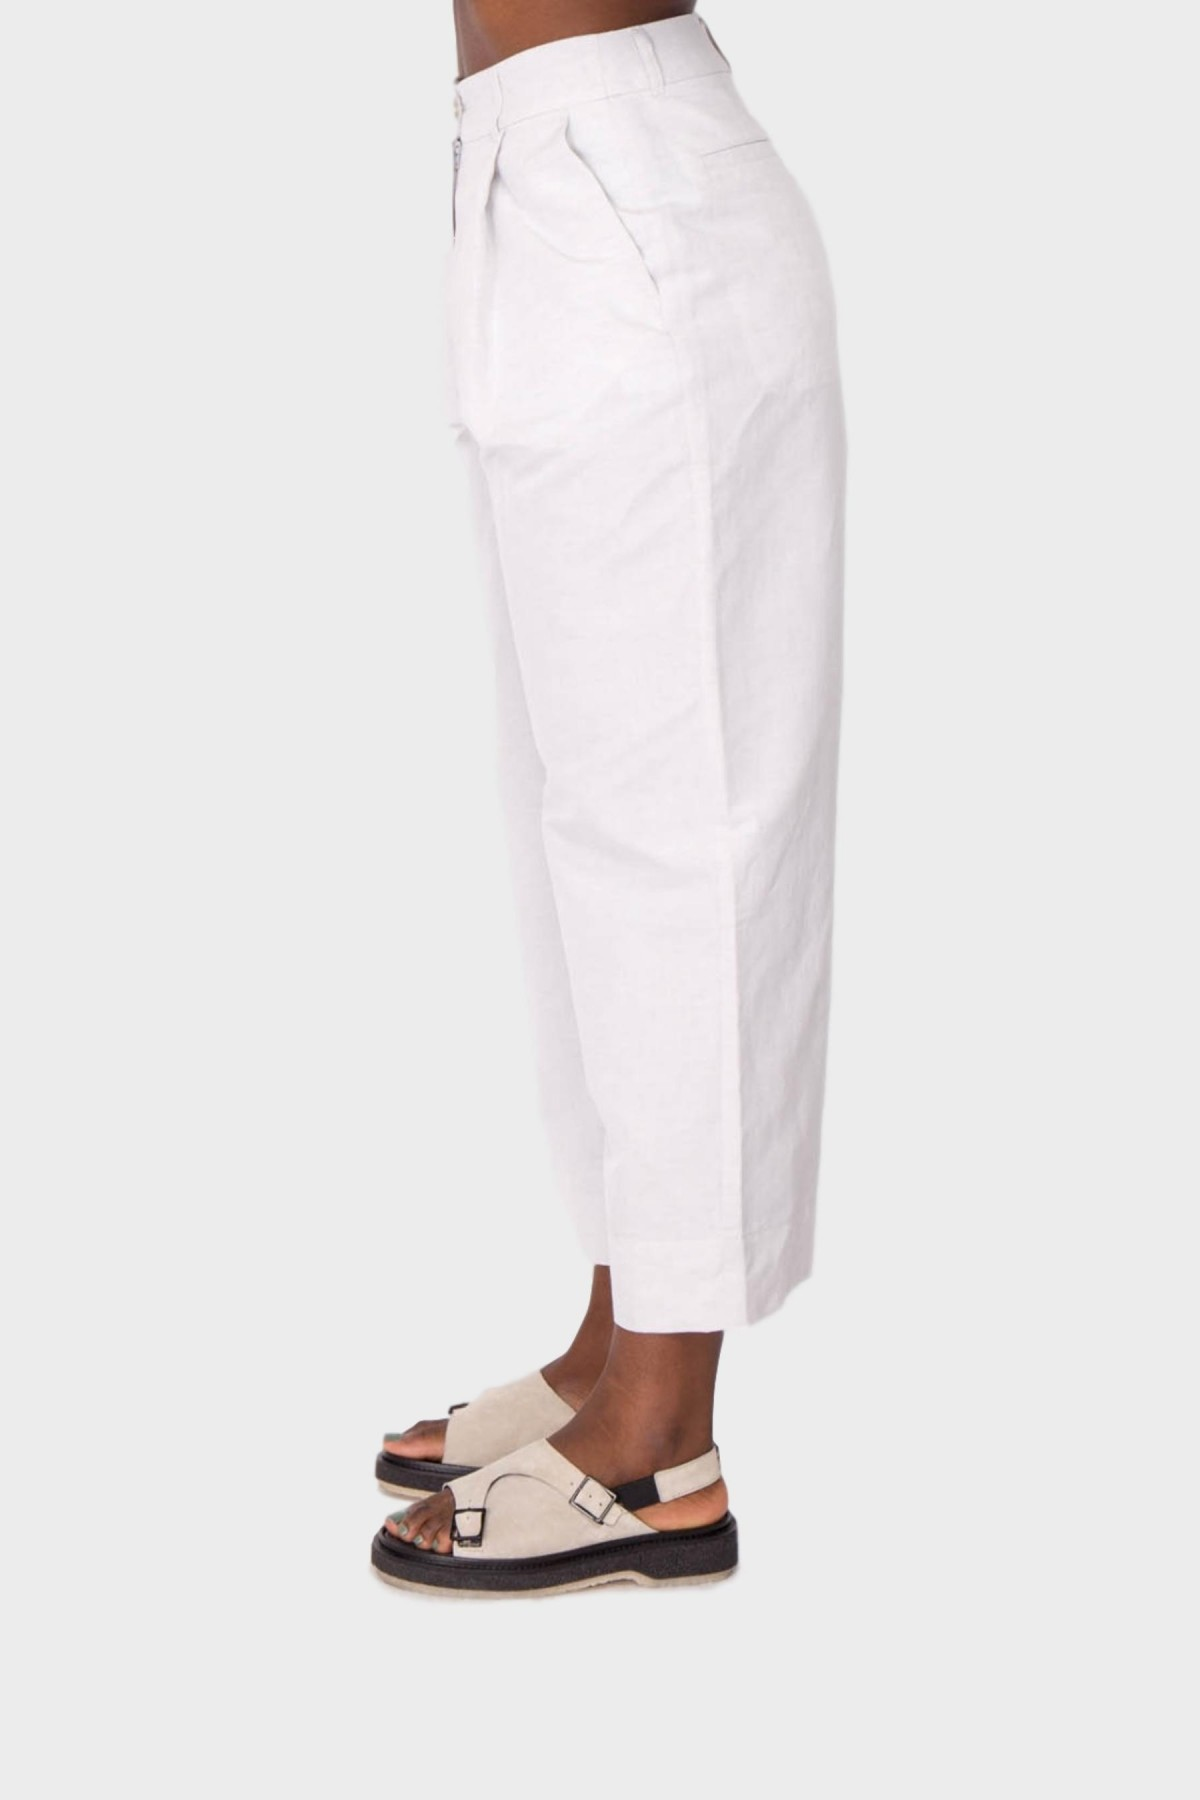 A Kind of Guise Banku Trousers in Light Stone